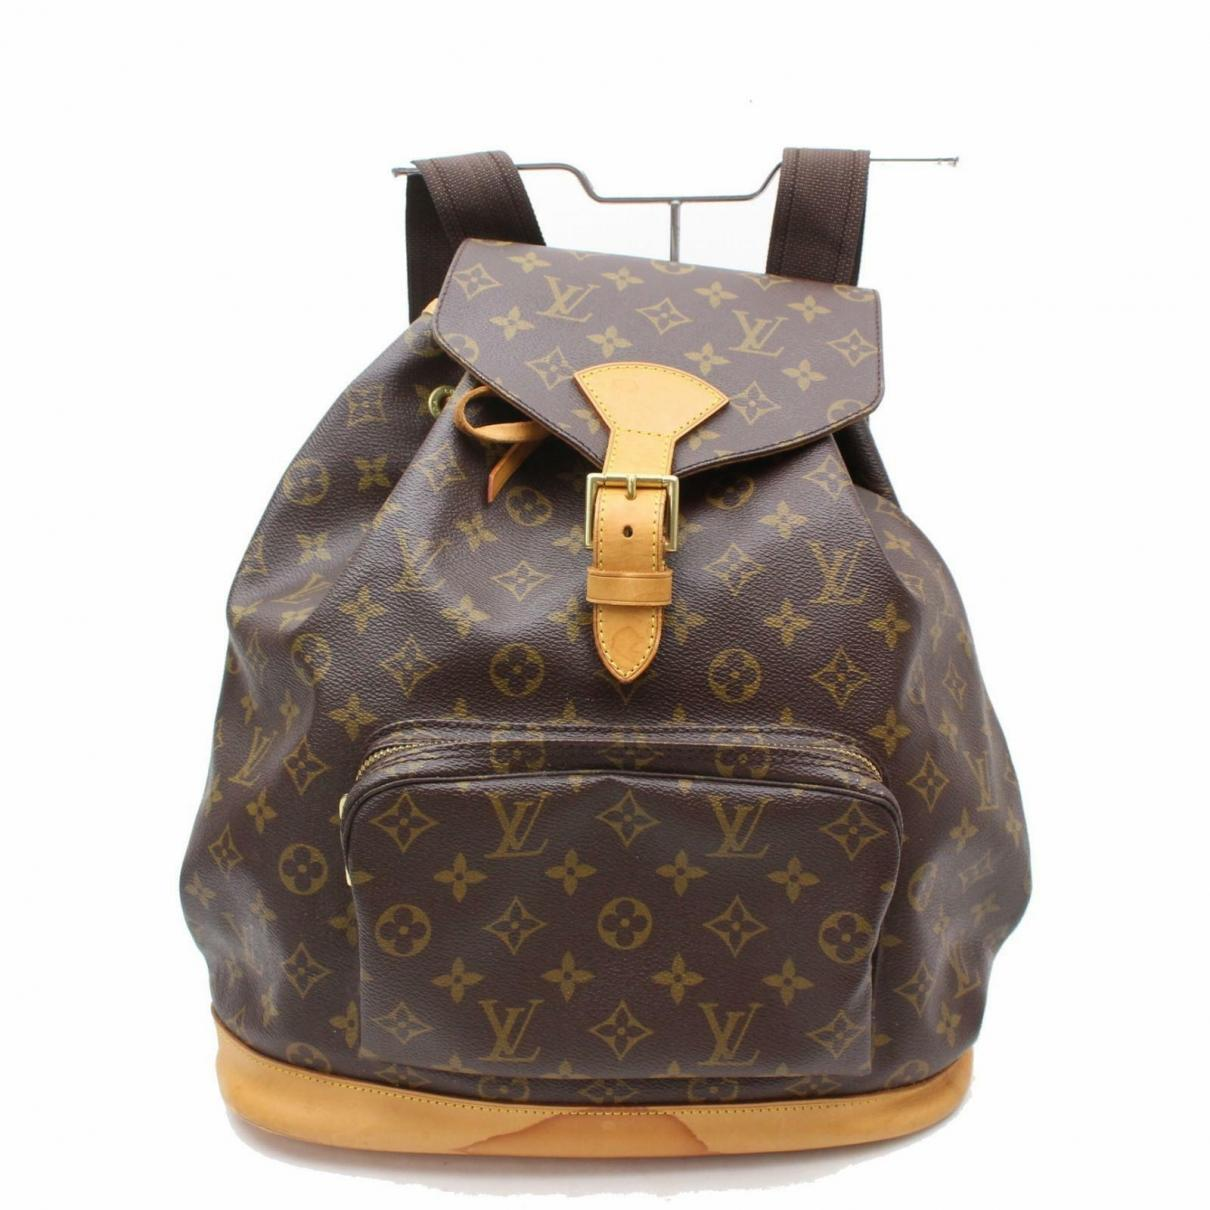 9d4efb41f8aa Lyst - Louis Vuitton Montsouris Leather Backpack in Brown - Save ...